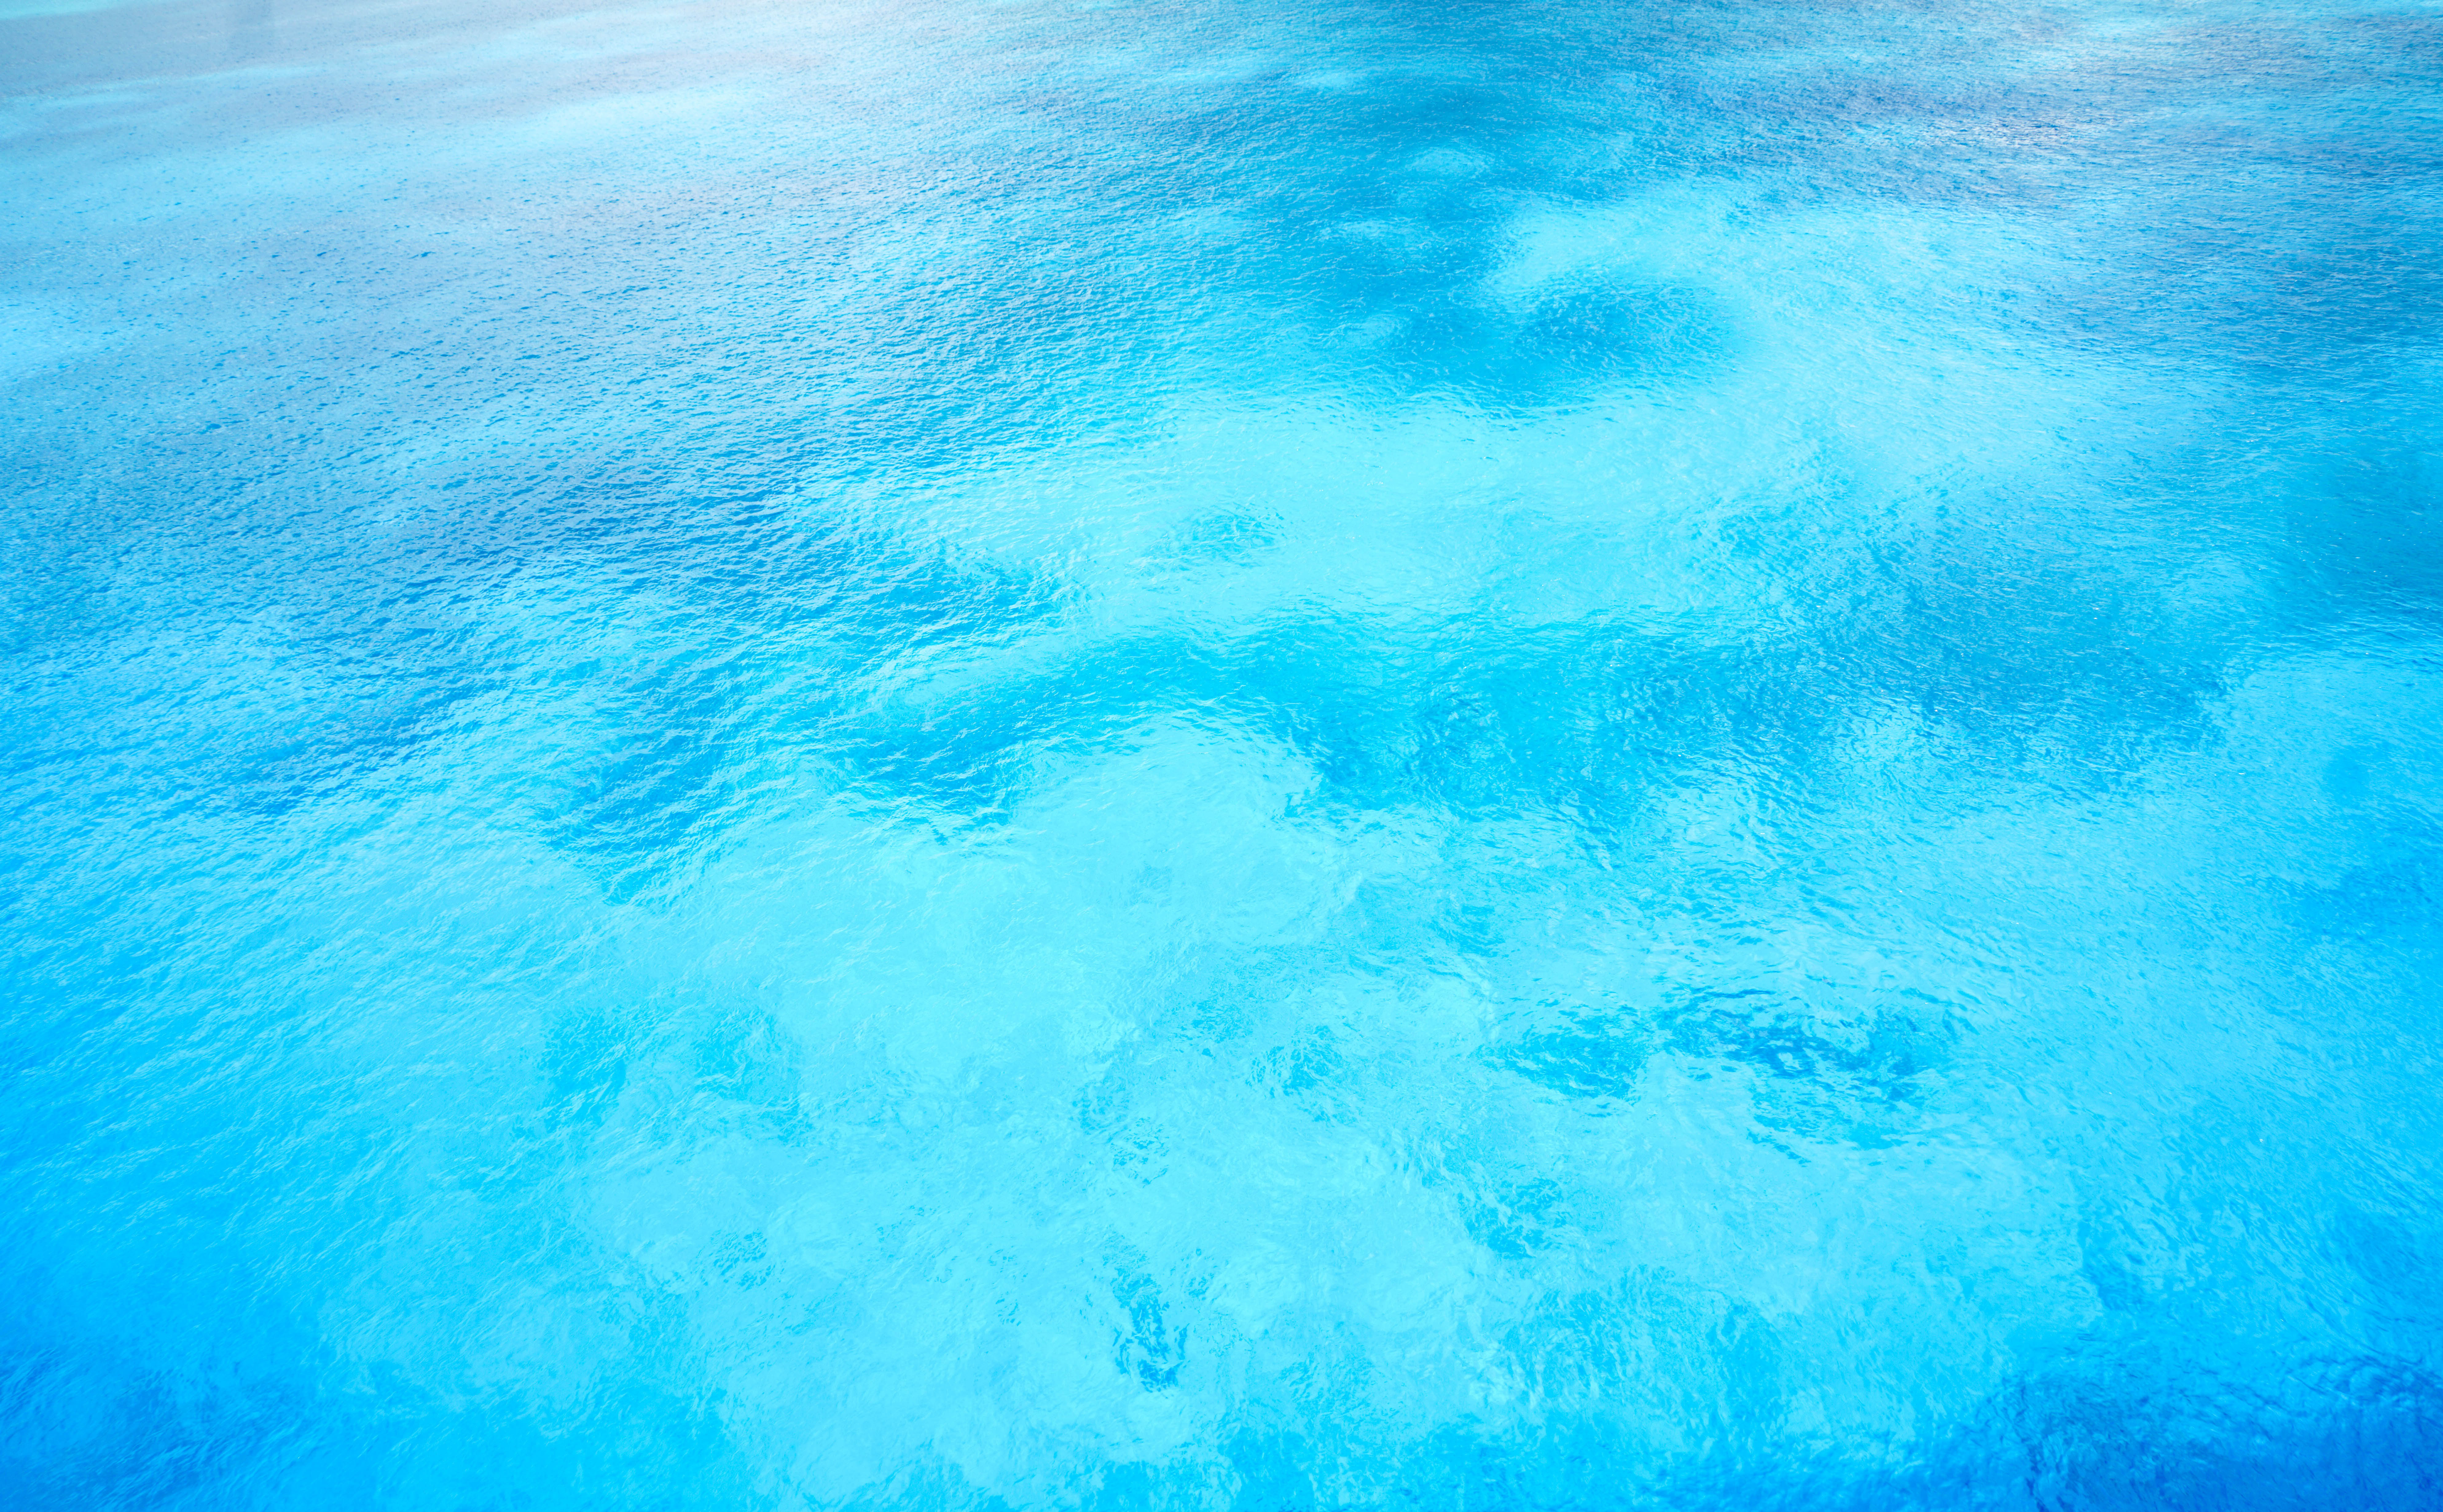 Water background photo 3578 - Water background images ...